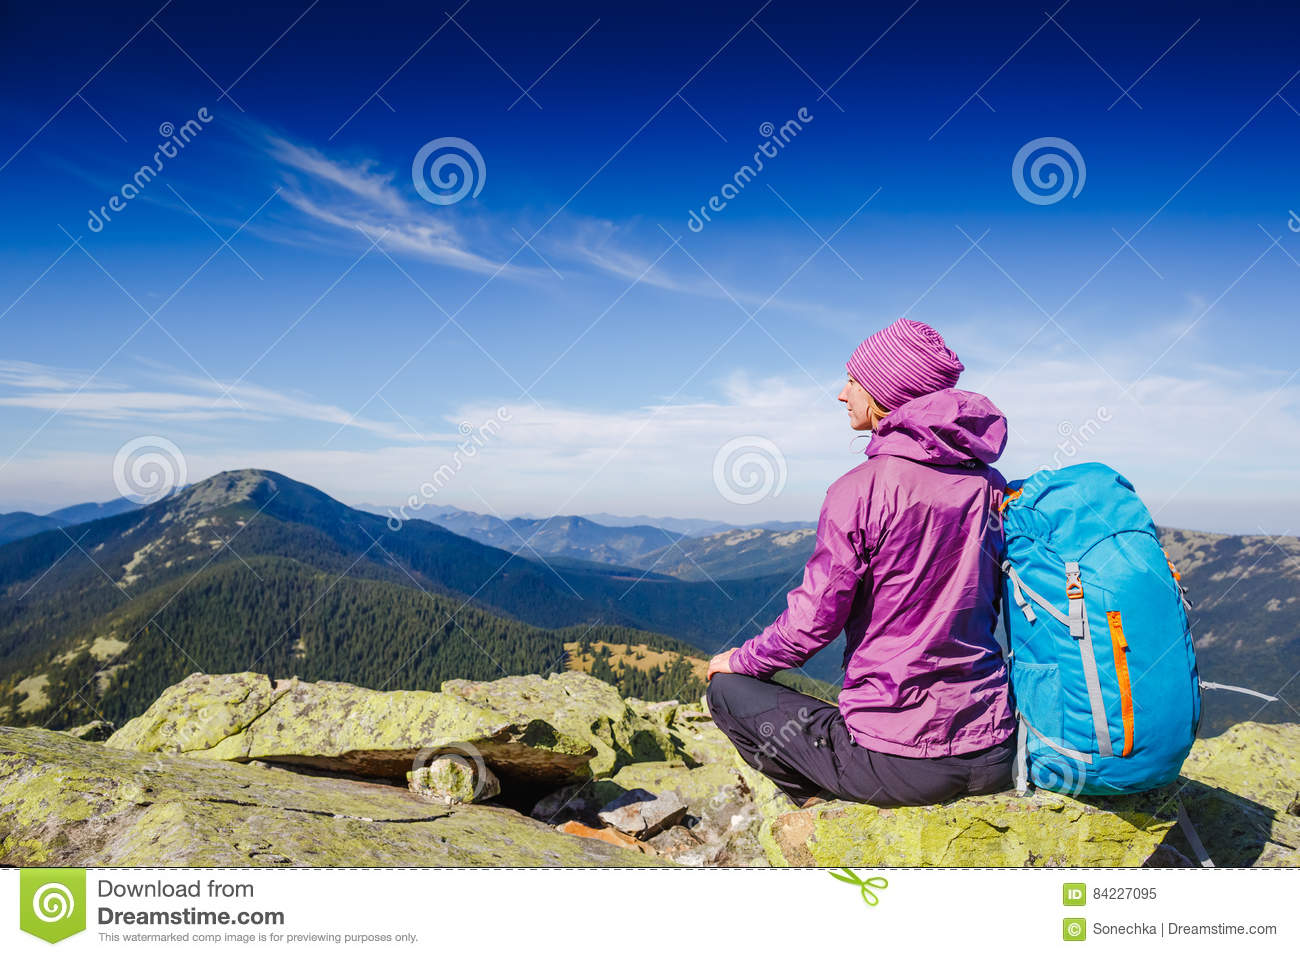 Woman Traveler with Backpack hiking in the Mountains and beautiful summer landscape